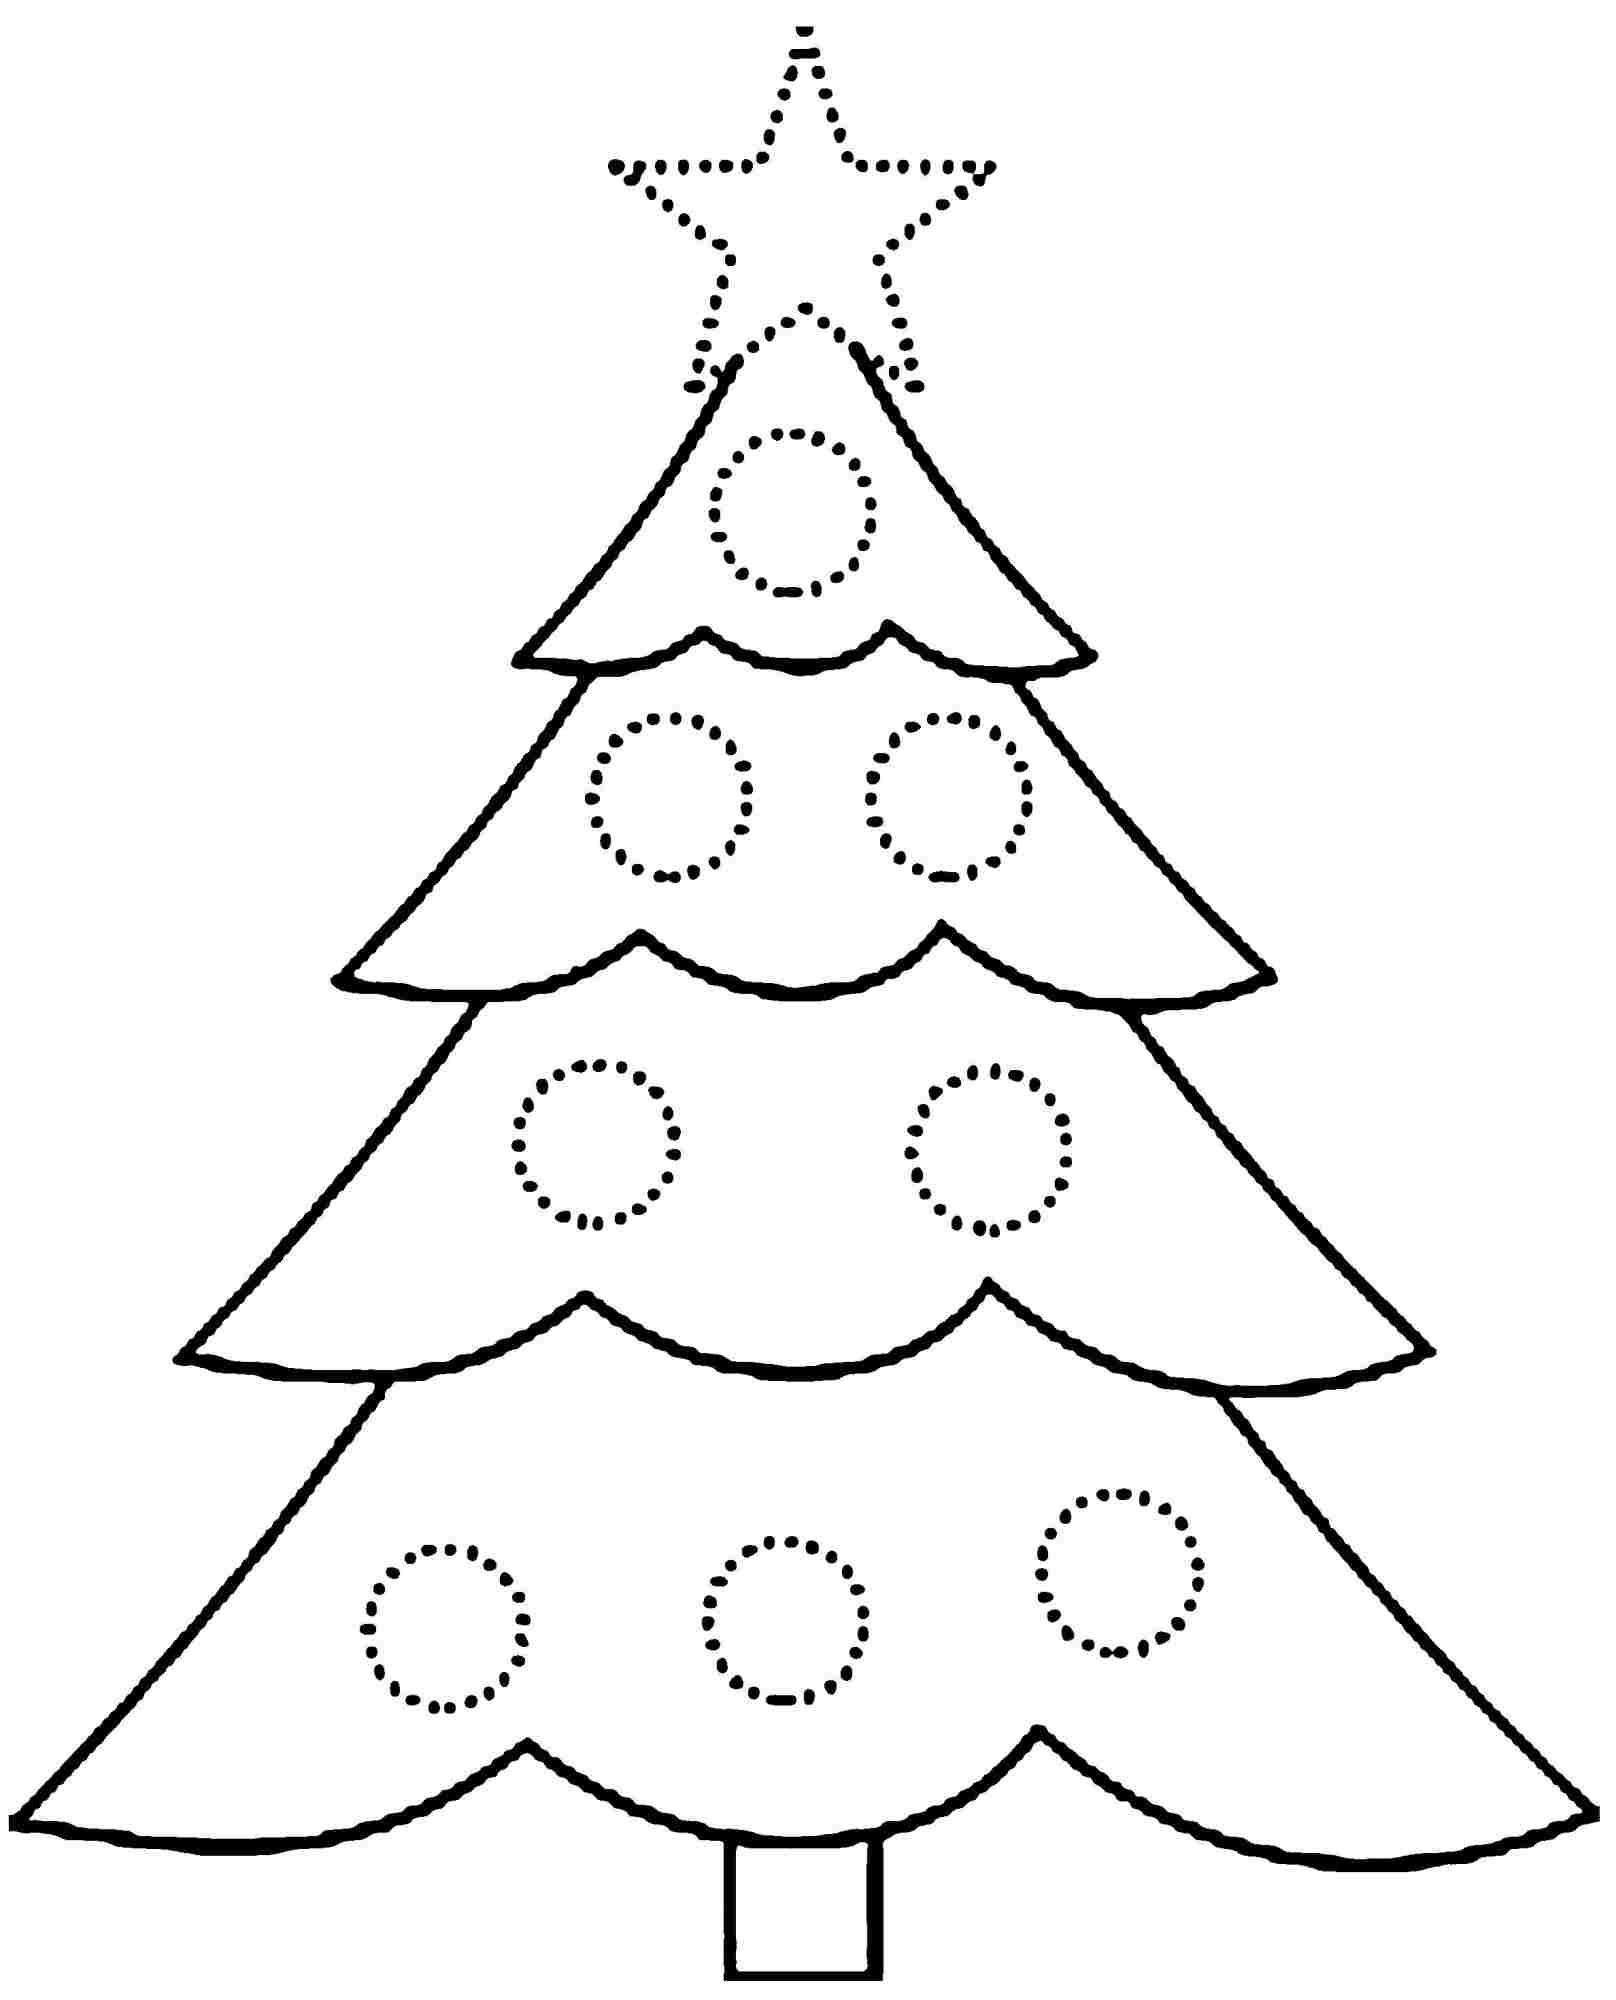 Santa Christmas Tree Coloring Page With Worksheet Best And